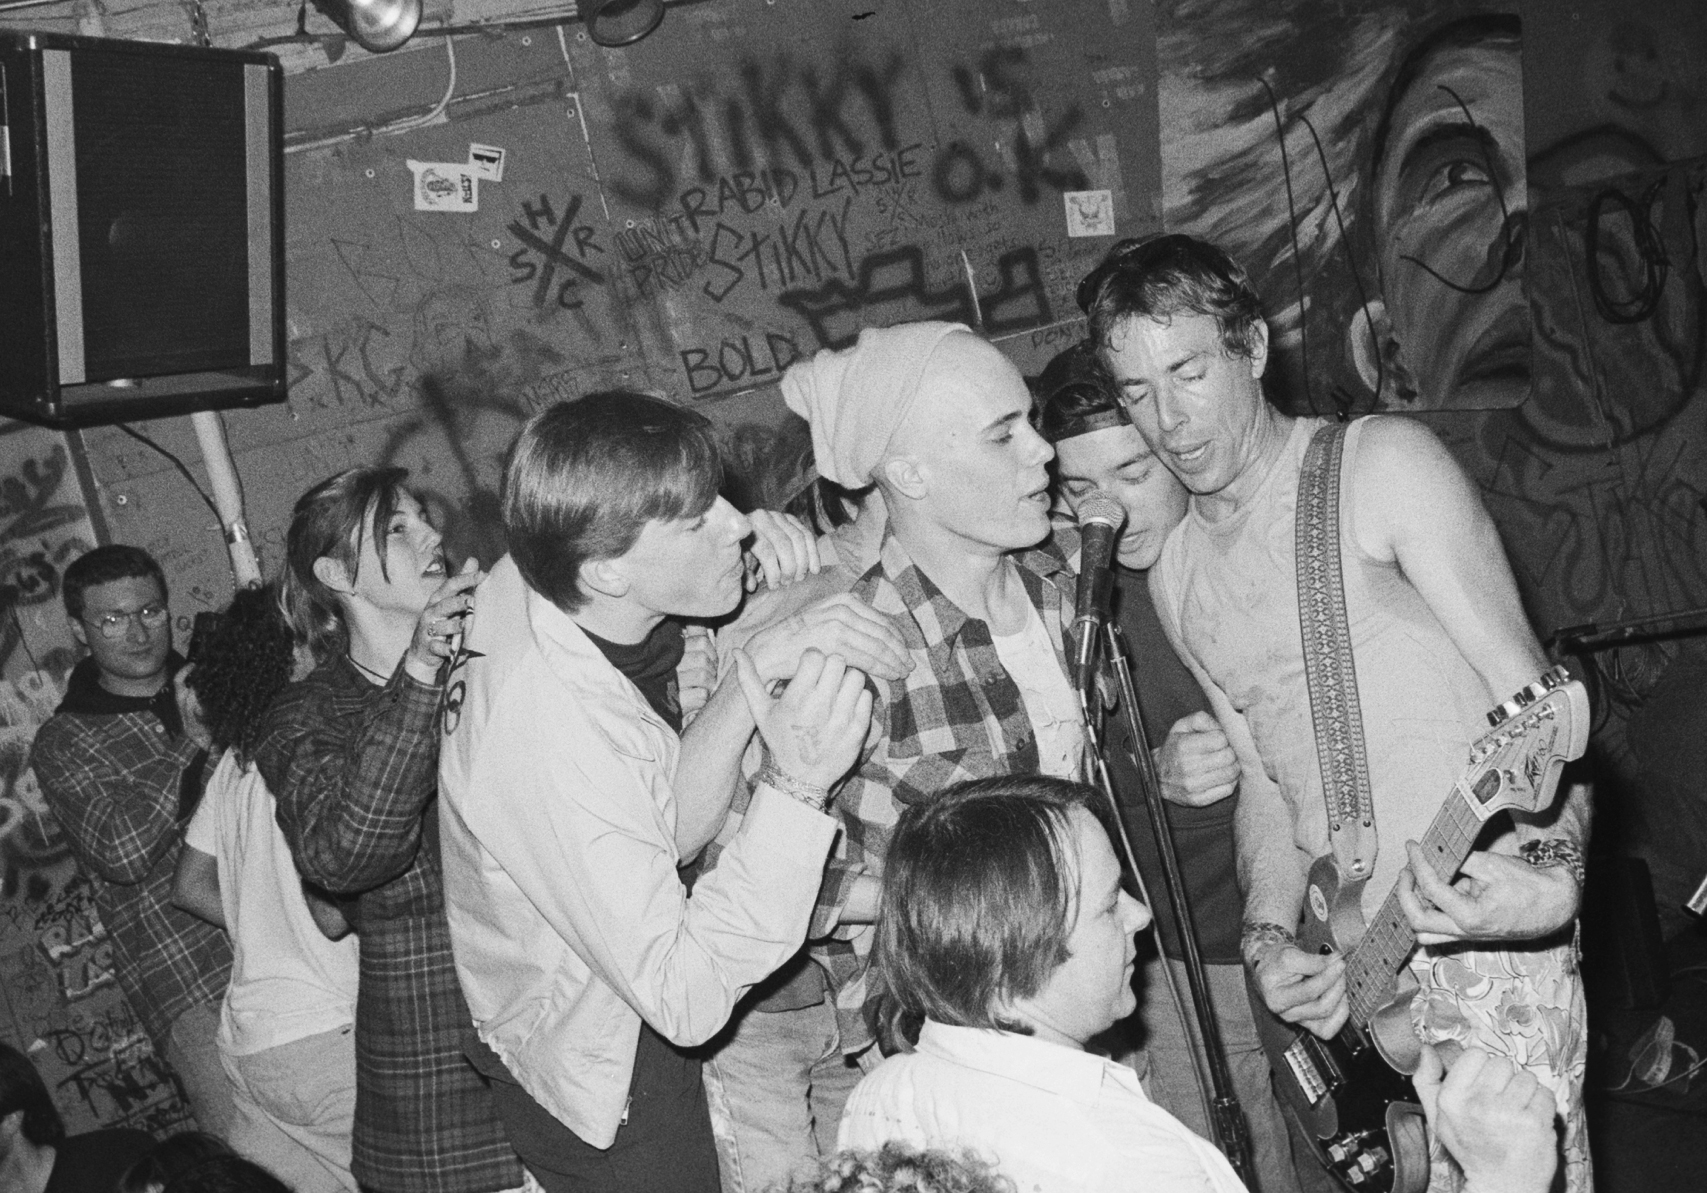 Larry Livermore, right, performs at 924 Gilman Street in this undated photo.